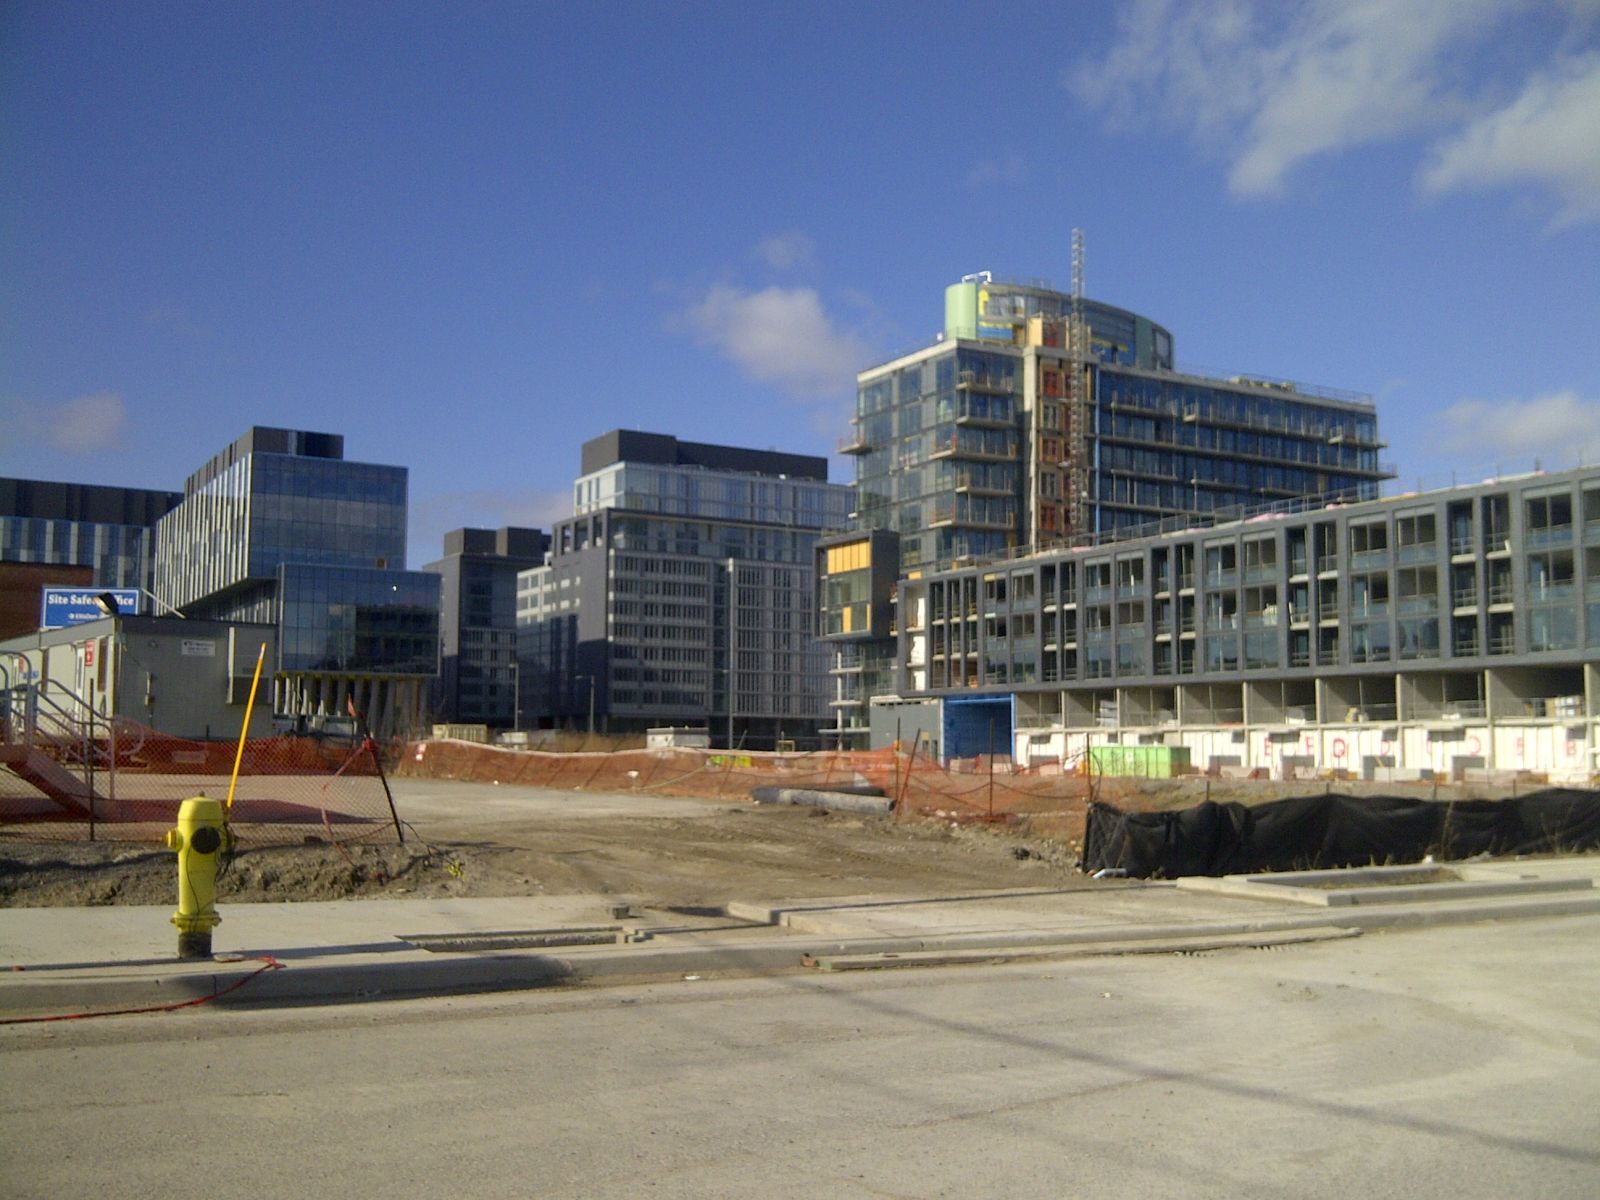 Photo of exterior of Pan Am Athletes' Village under construction